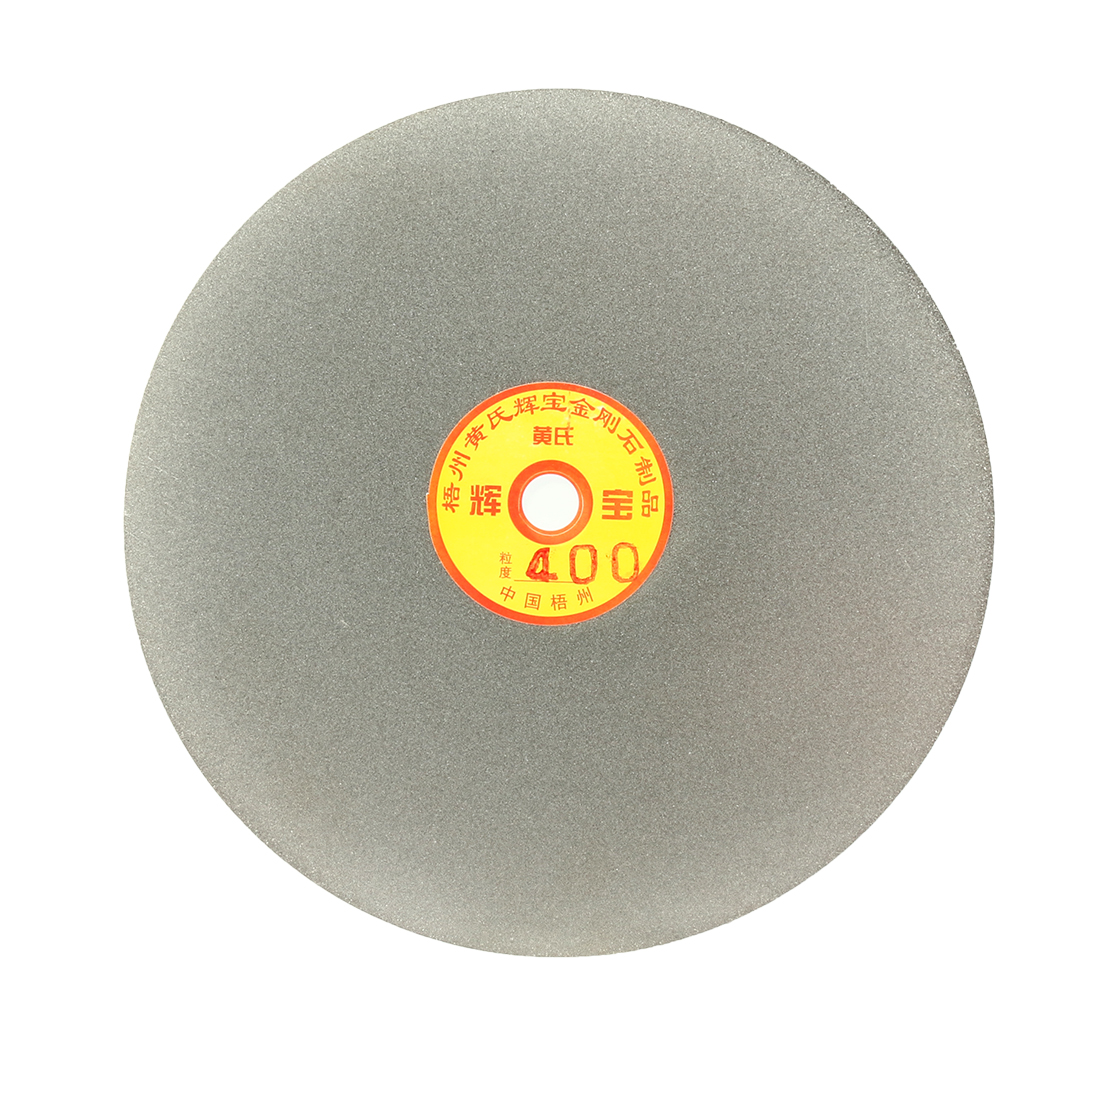 180mm 7-inch Grit 400 Diamond Coated Flat Lap Disk Wheel Grinding Sanding Disc